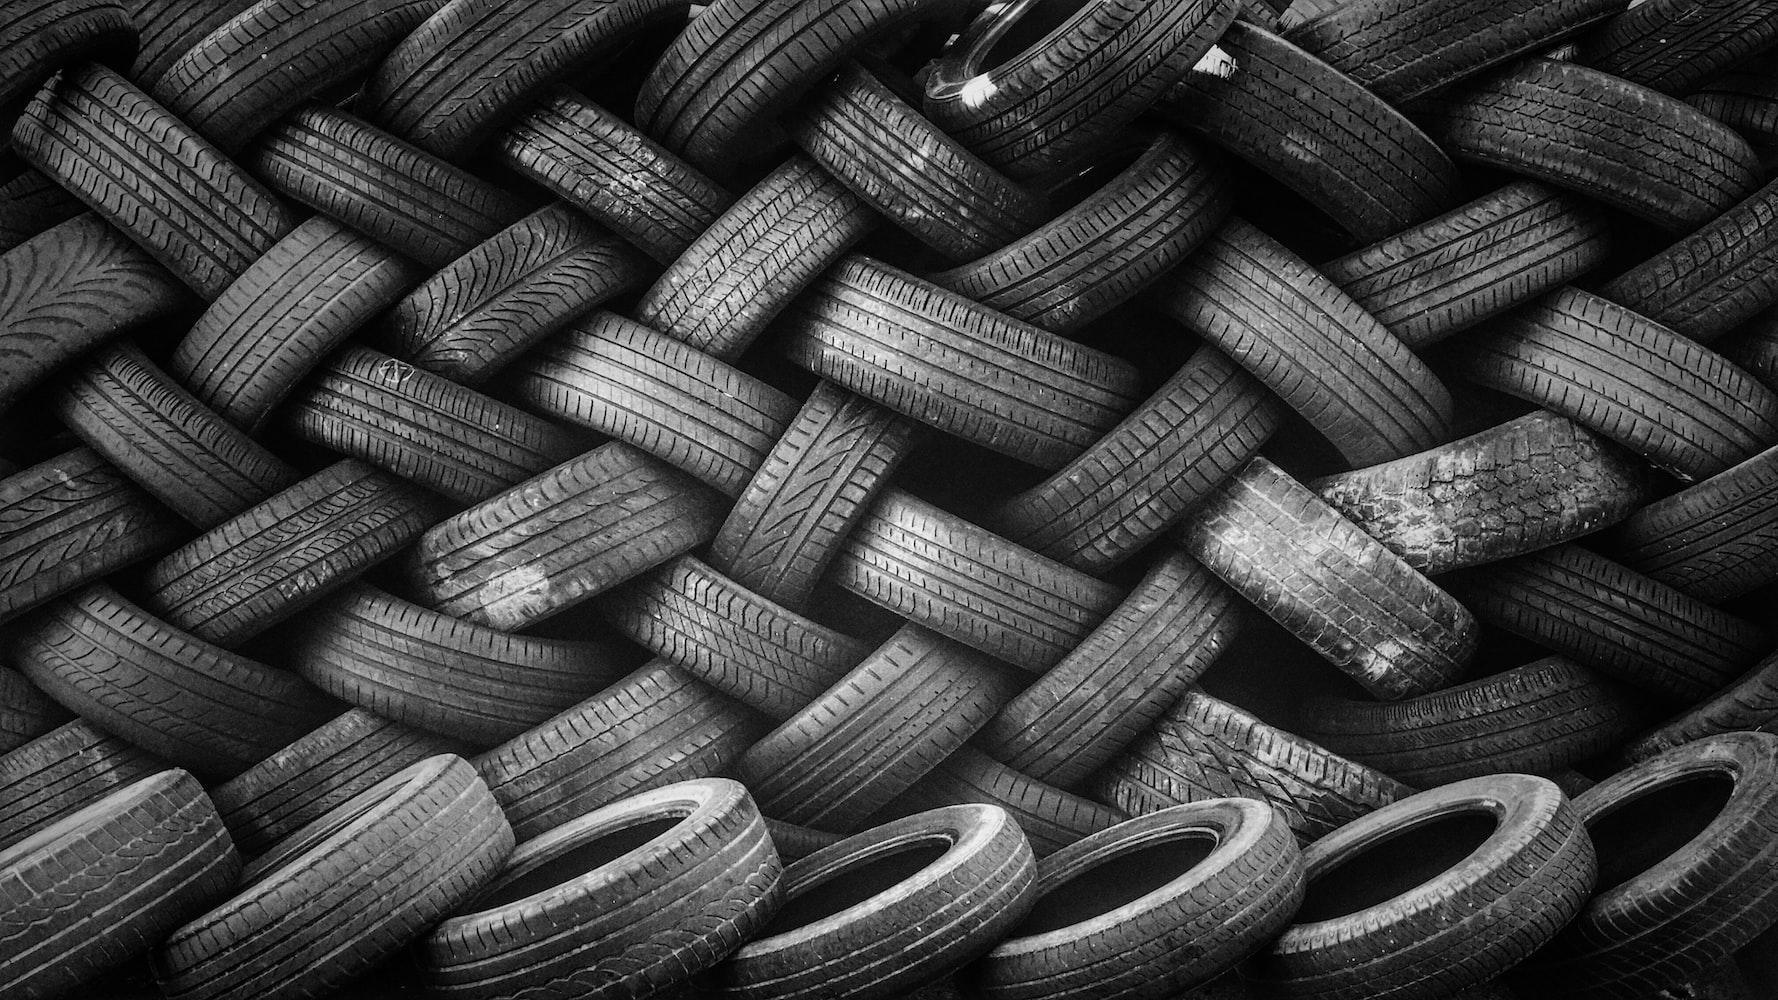 Tires piled in an interesting pattern.